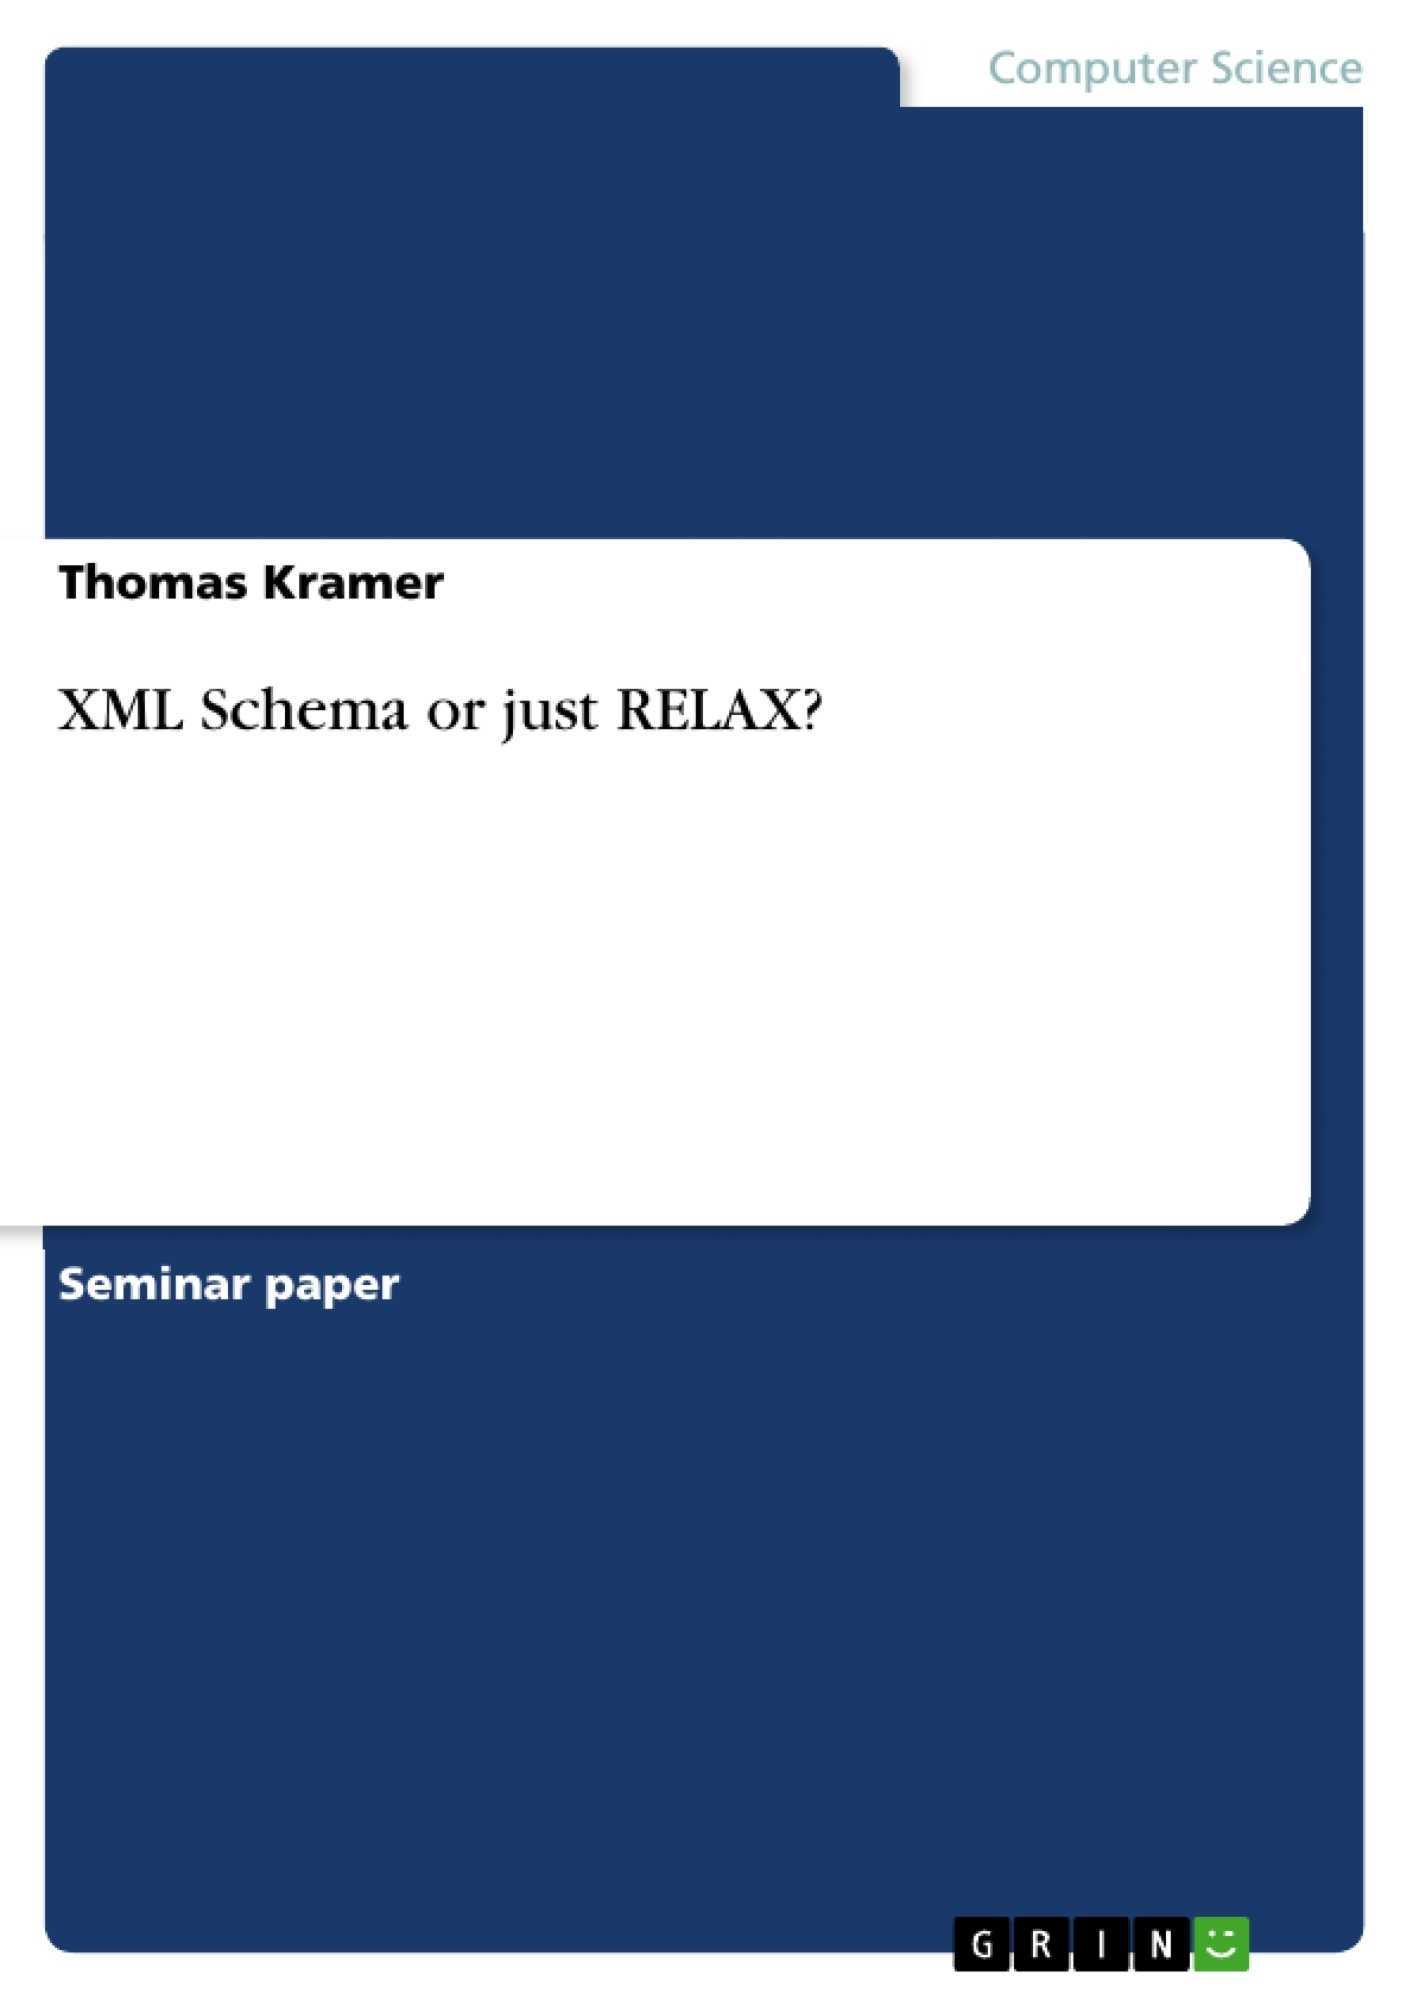 Title: XML Schema or just RELAX?